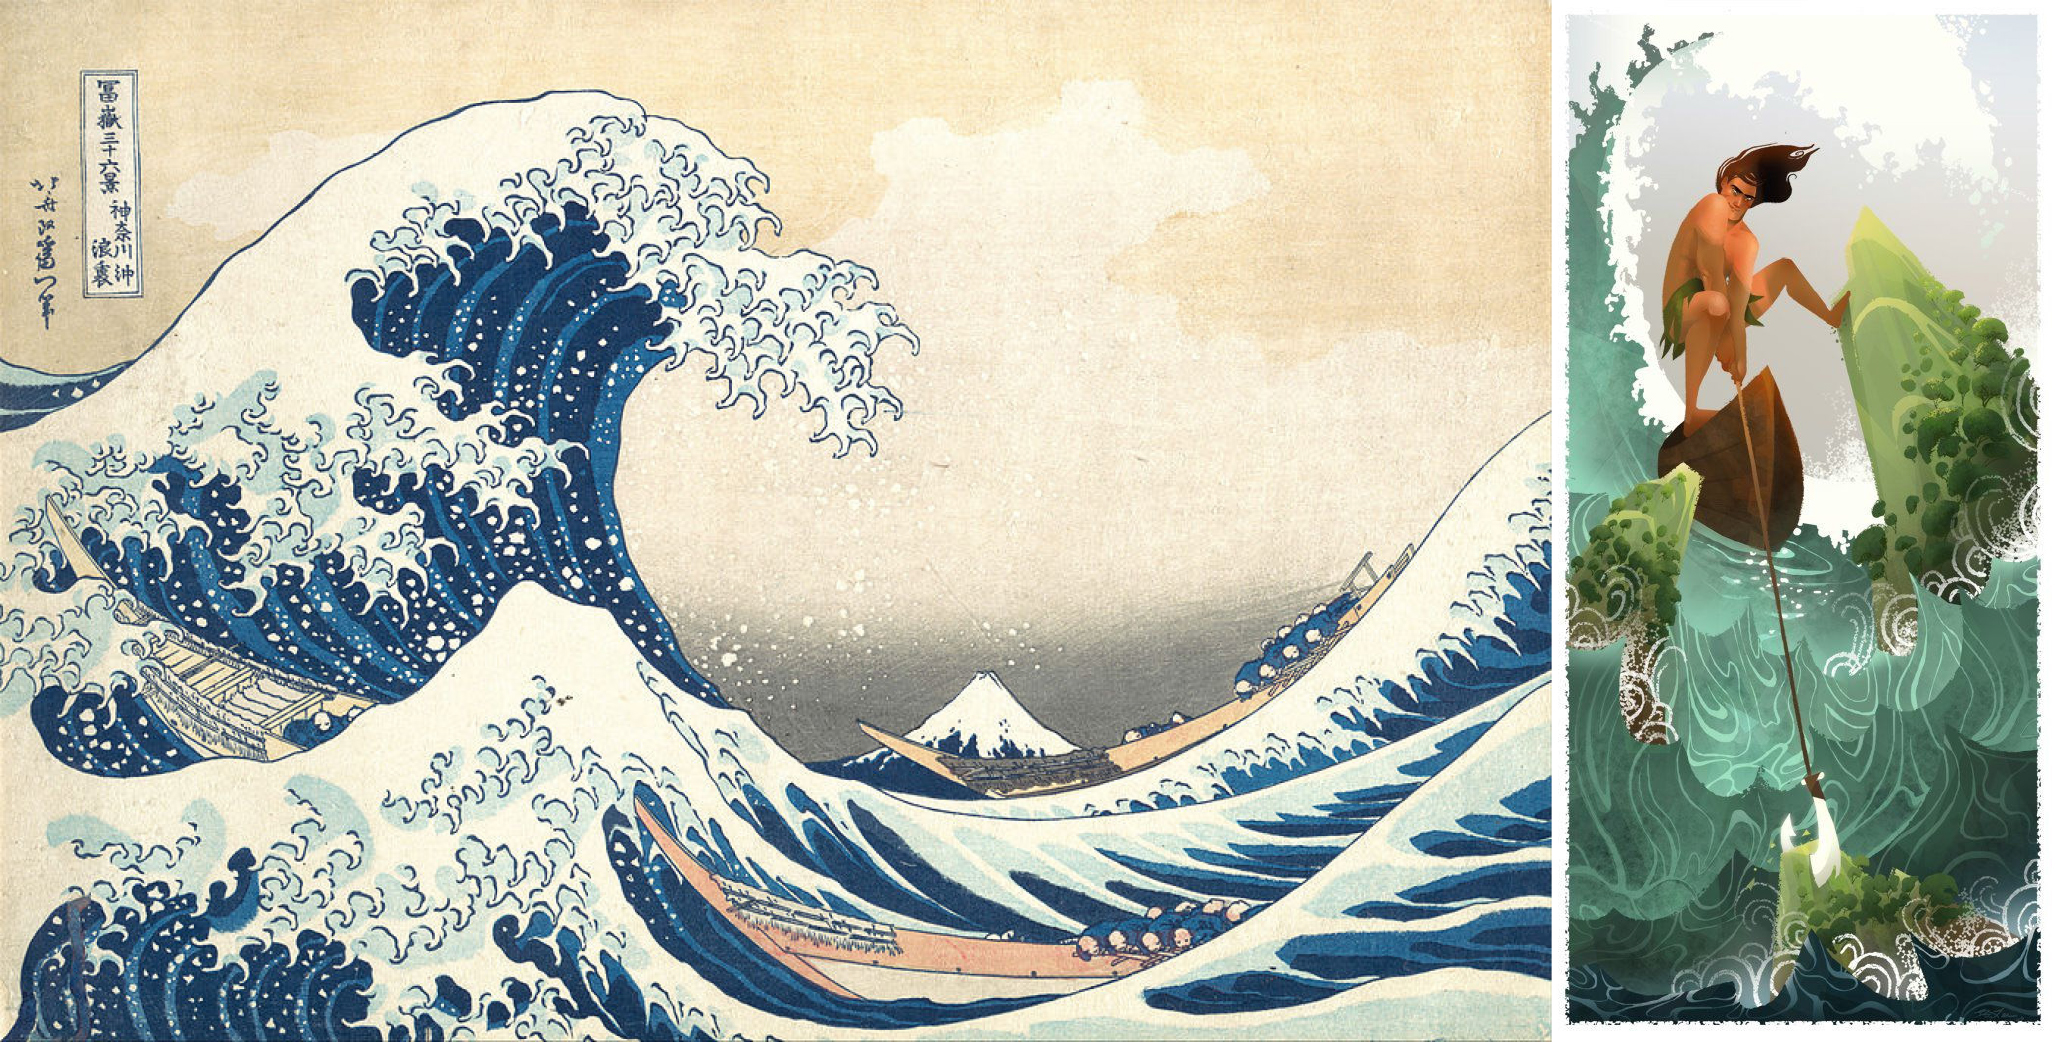 hokusai_blee_estampe_digital_painting1